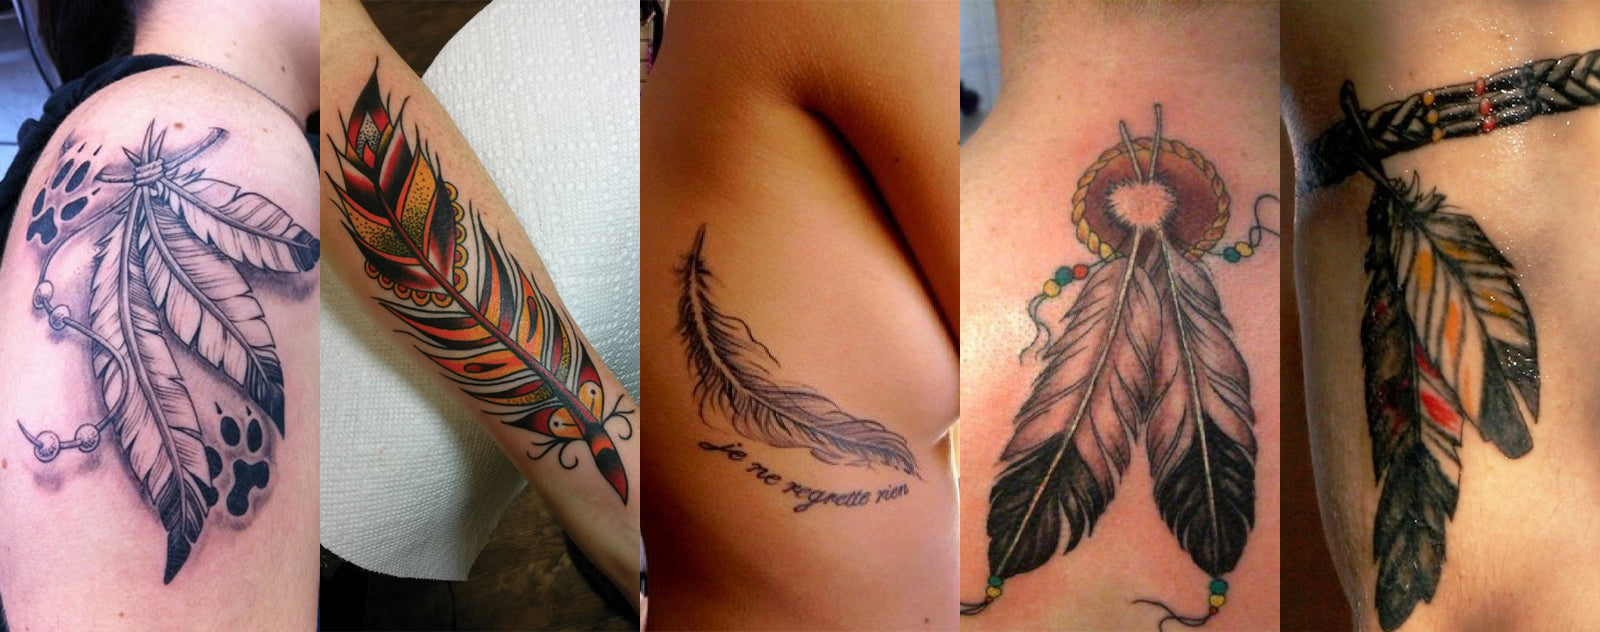 tatouage indien plume signification